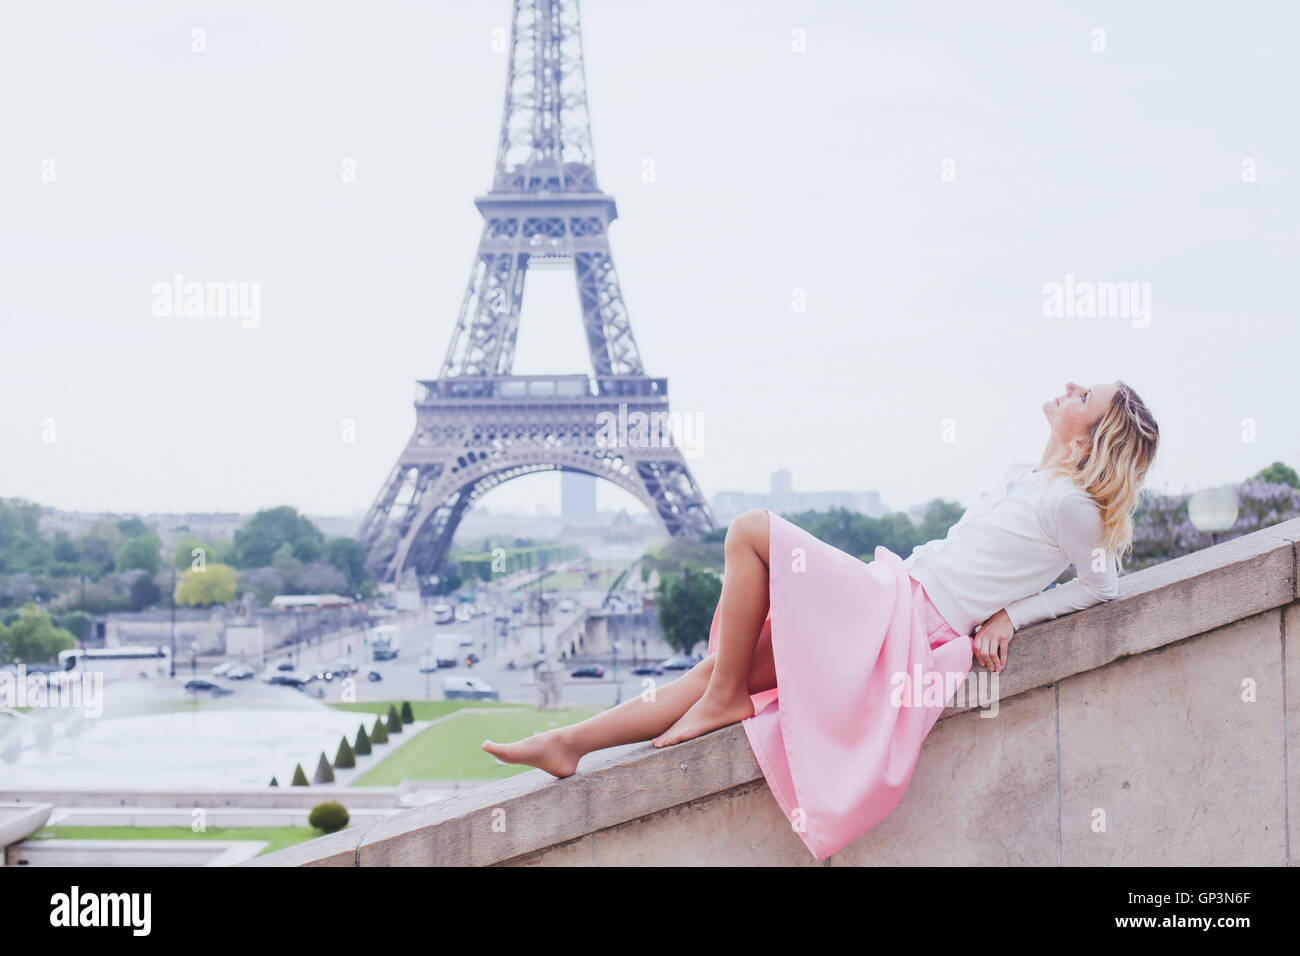 romantic girl in Paris, fashion woman looking up near Eiffel tower - Stock Image